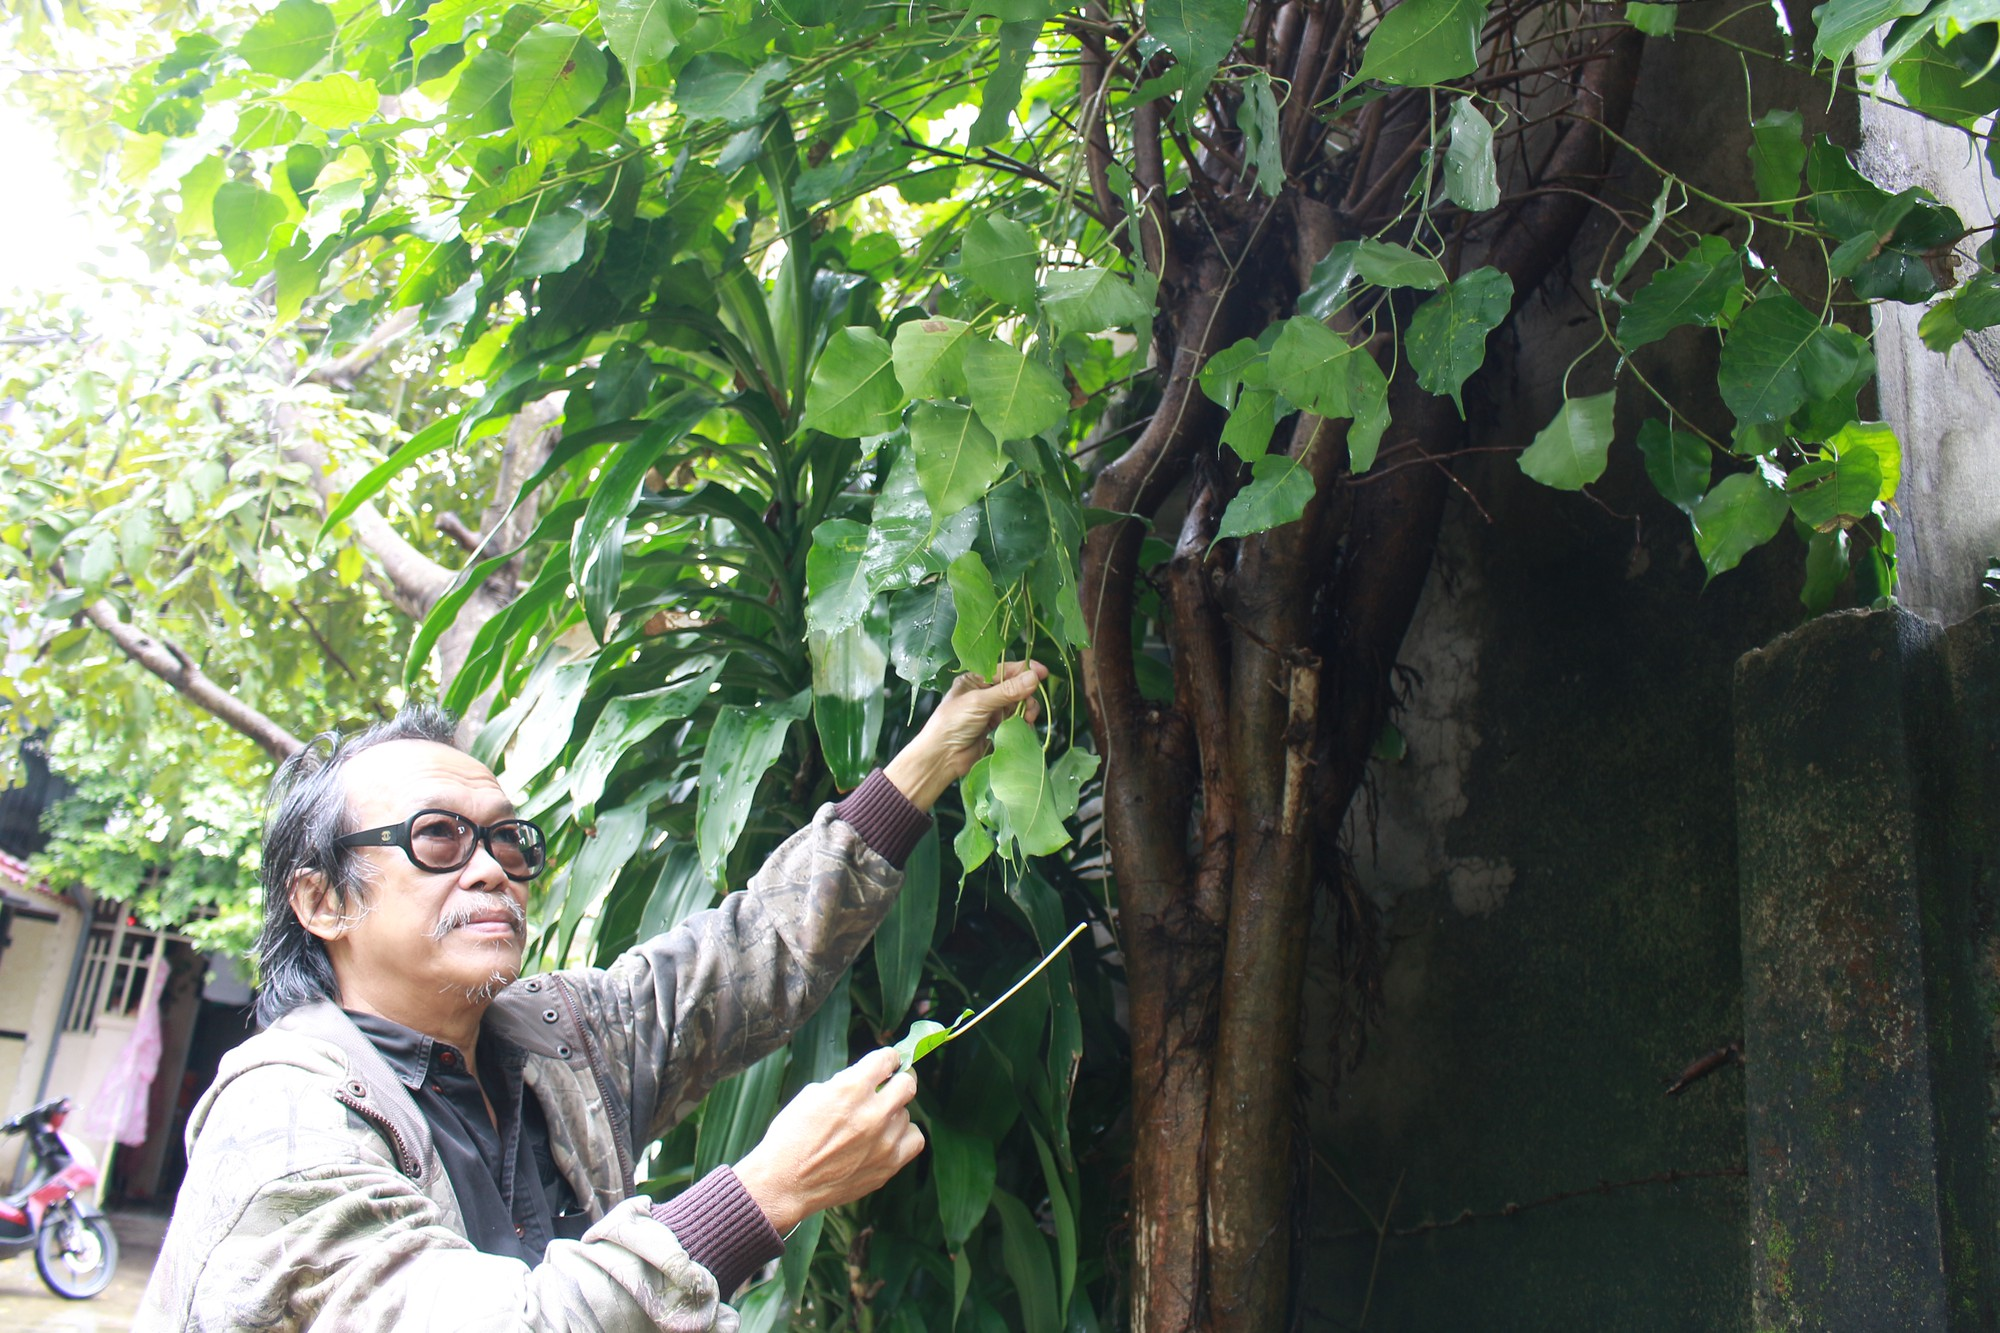 Le Nguyen Vy collects Bodhi leaves. Photo: Doan Nhan / Tuoi Tre